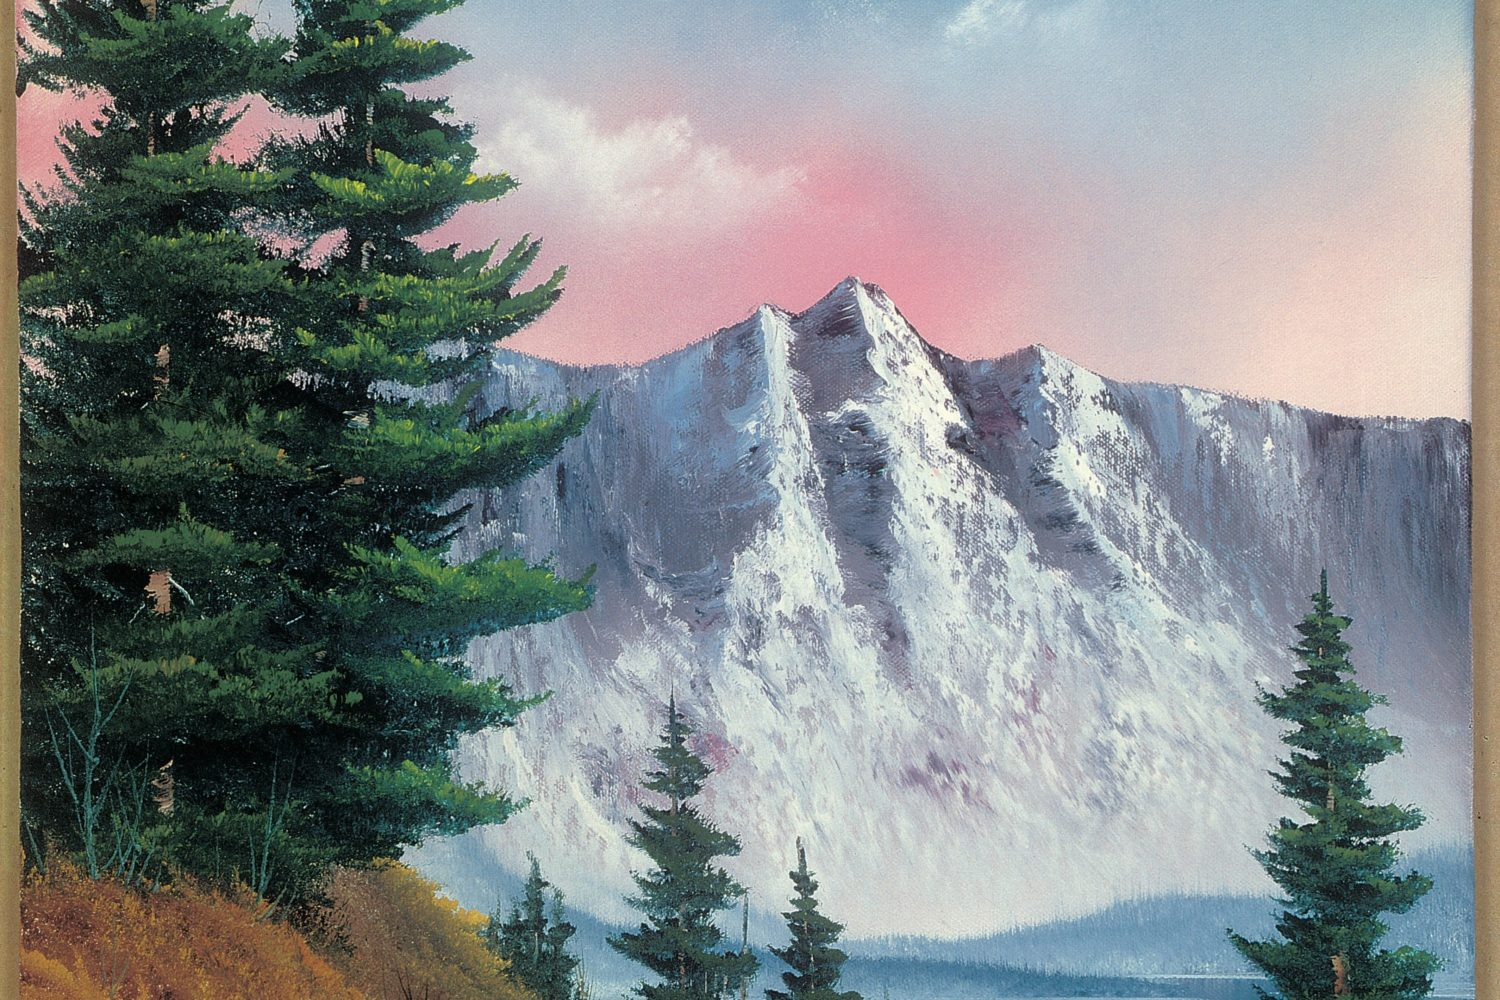 The largest collection of Ross' paintings to ever be displayed at one time will be shown in the Franklin Park Arts Center in Purcellville, Virginia. Courtesy of Bob Ross Inc.